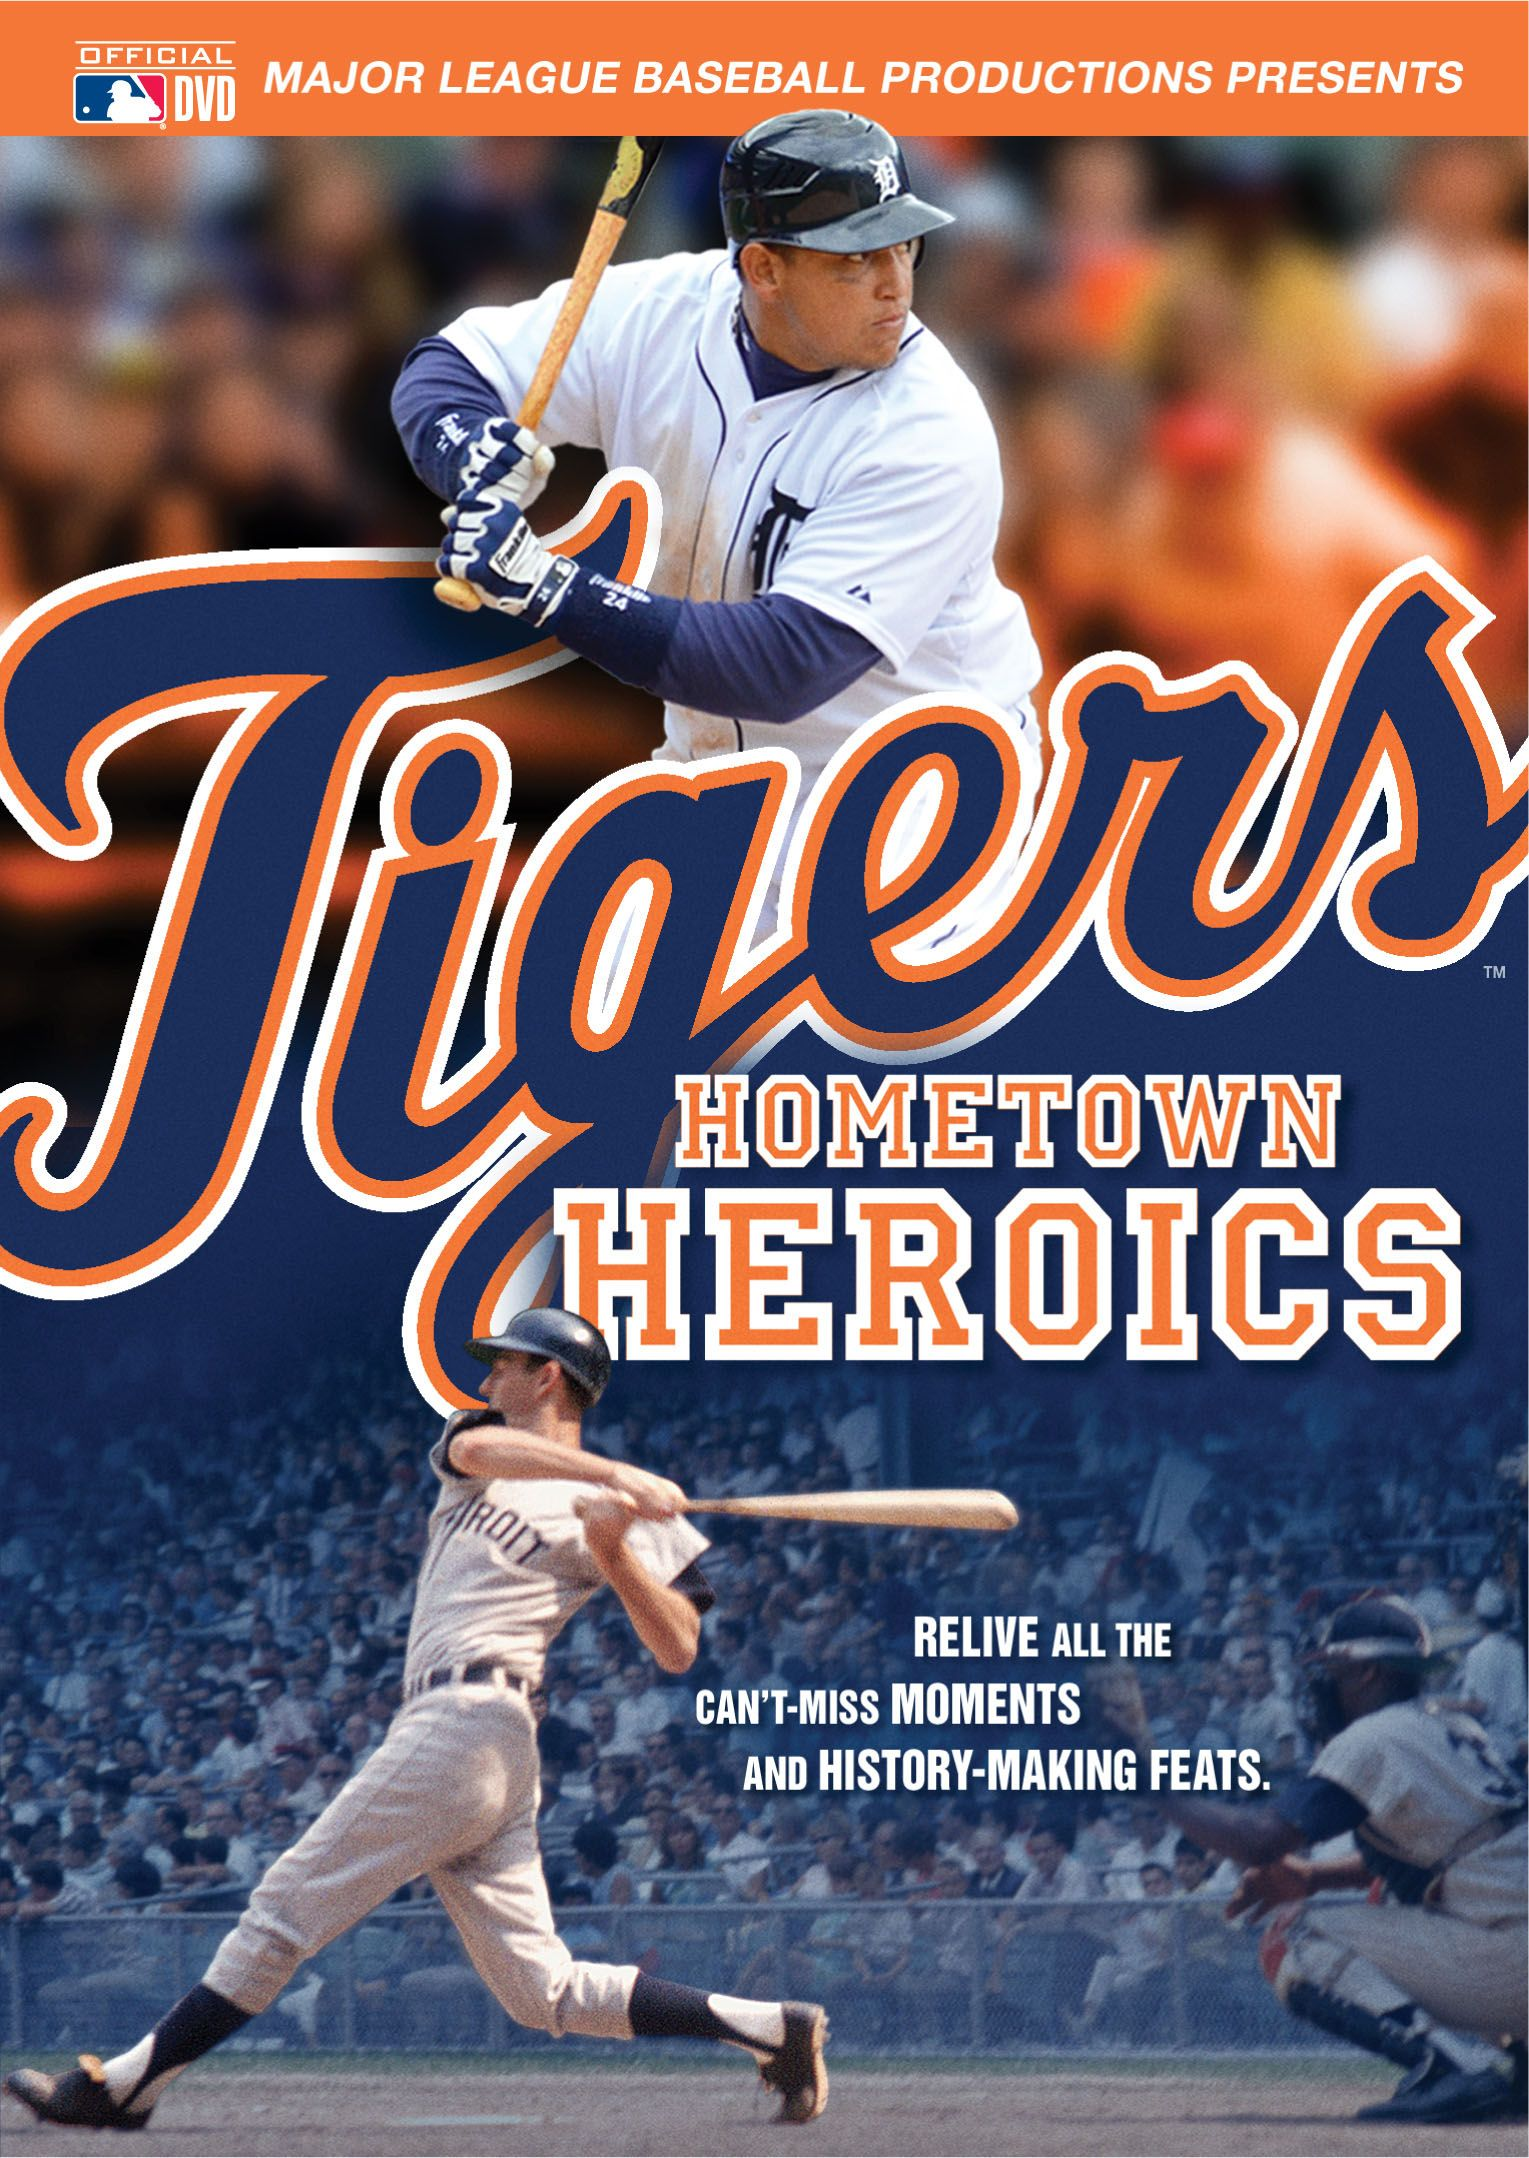 MLB: Tigers - Hometown Heroics